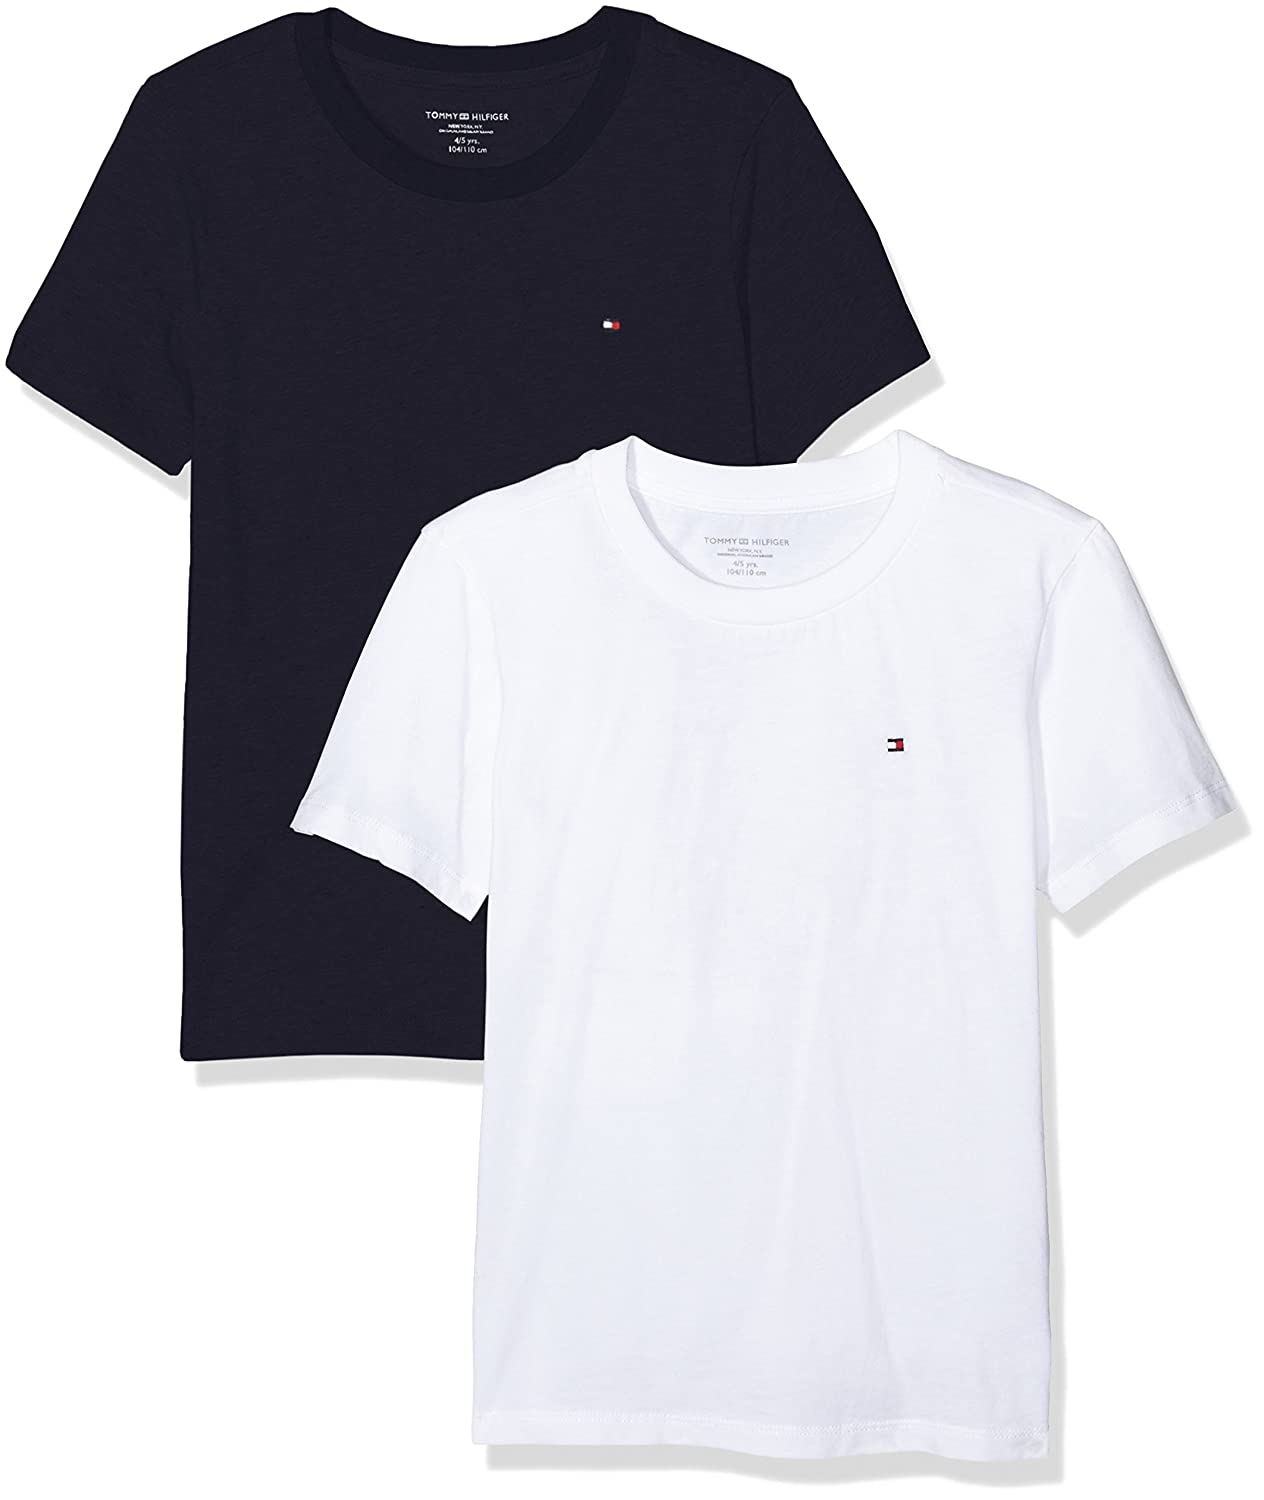 ade179231e24 Tommy Hilfiger Boy s T-Shirt Pack of 2  Amazon.co.uk  Clothing